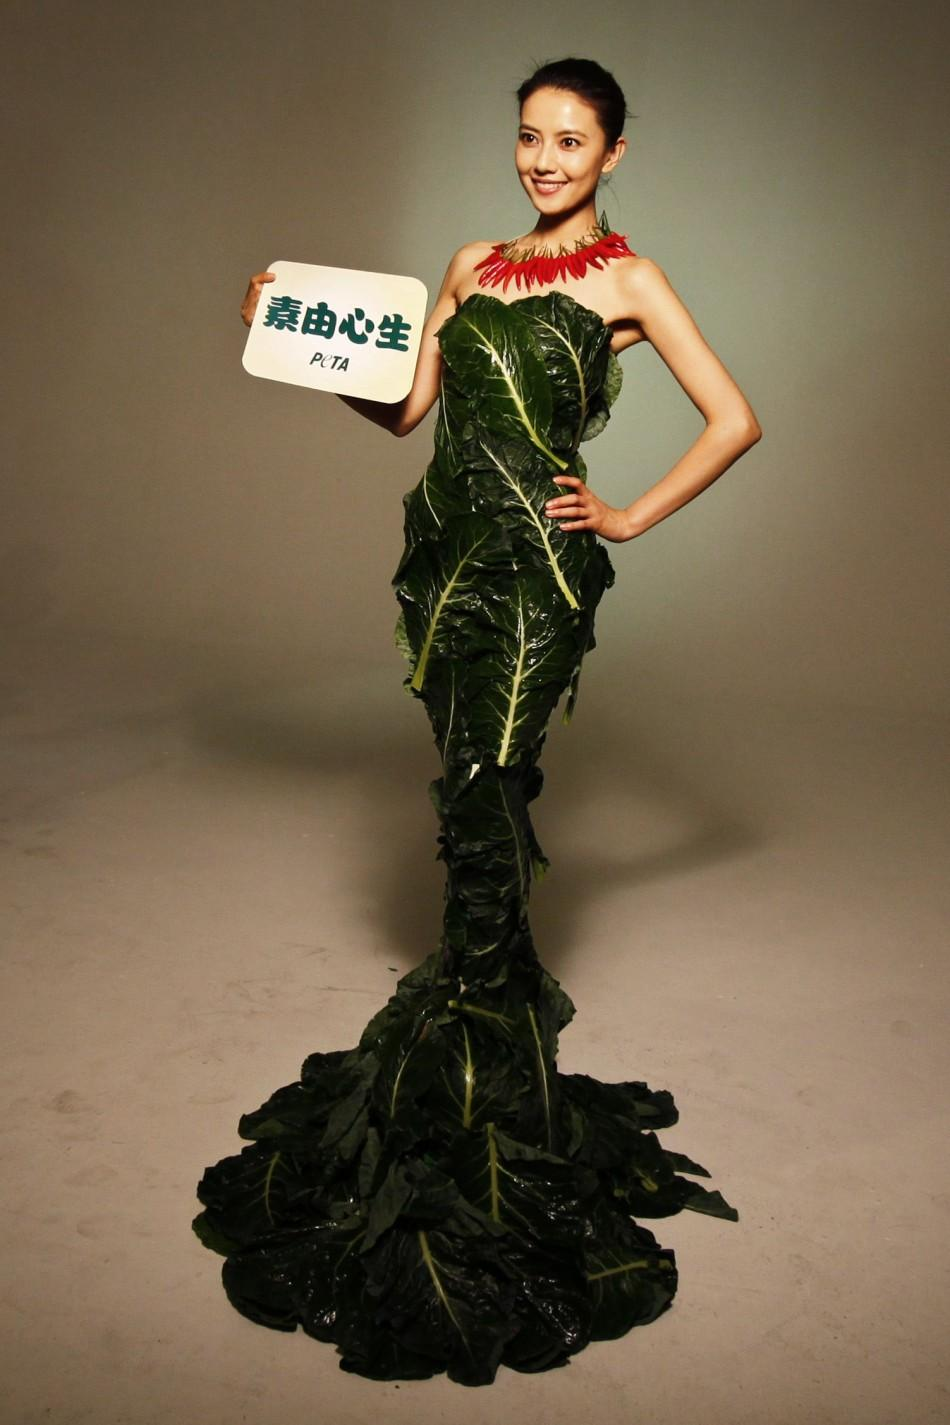 Chinese movie star Gao poses in a gown made of lettuce and cabbage leaves during an event organized by PETA in Beijing